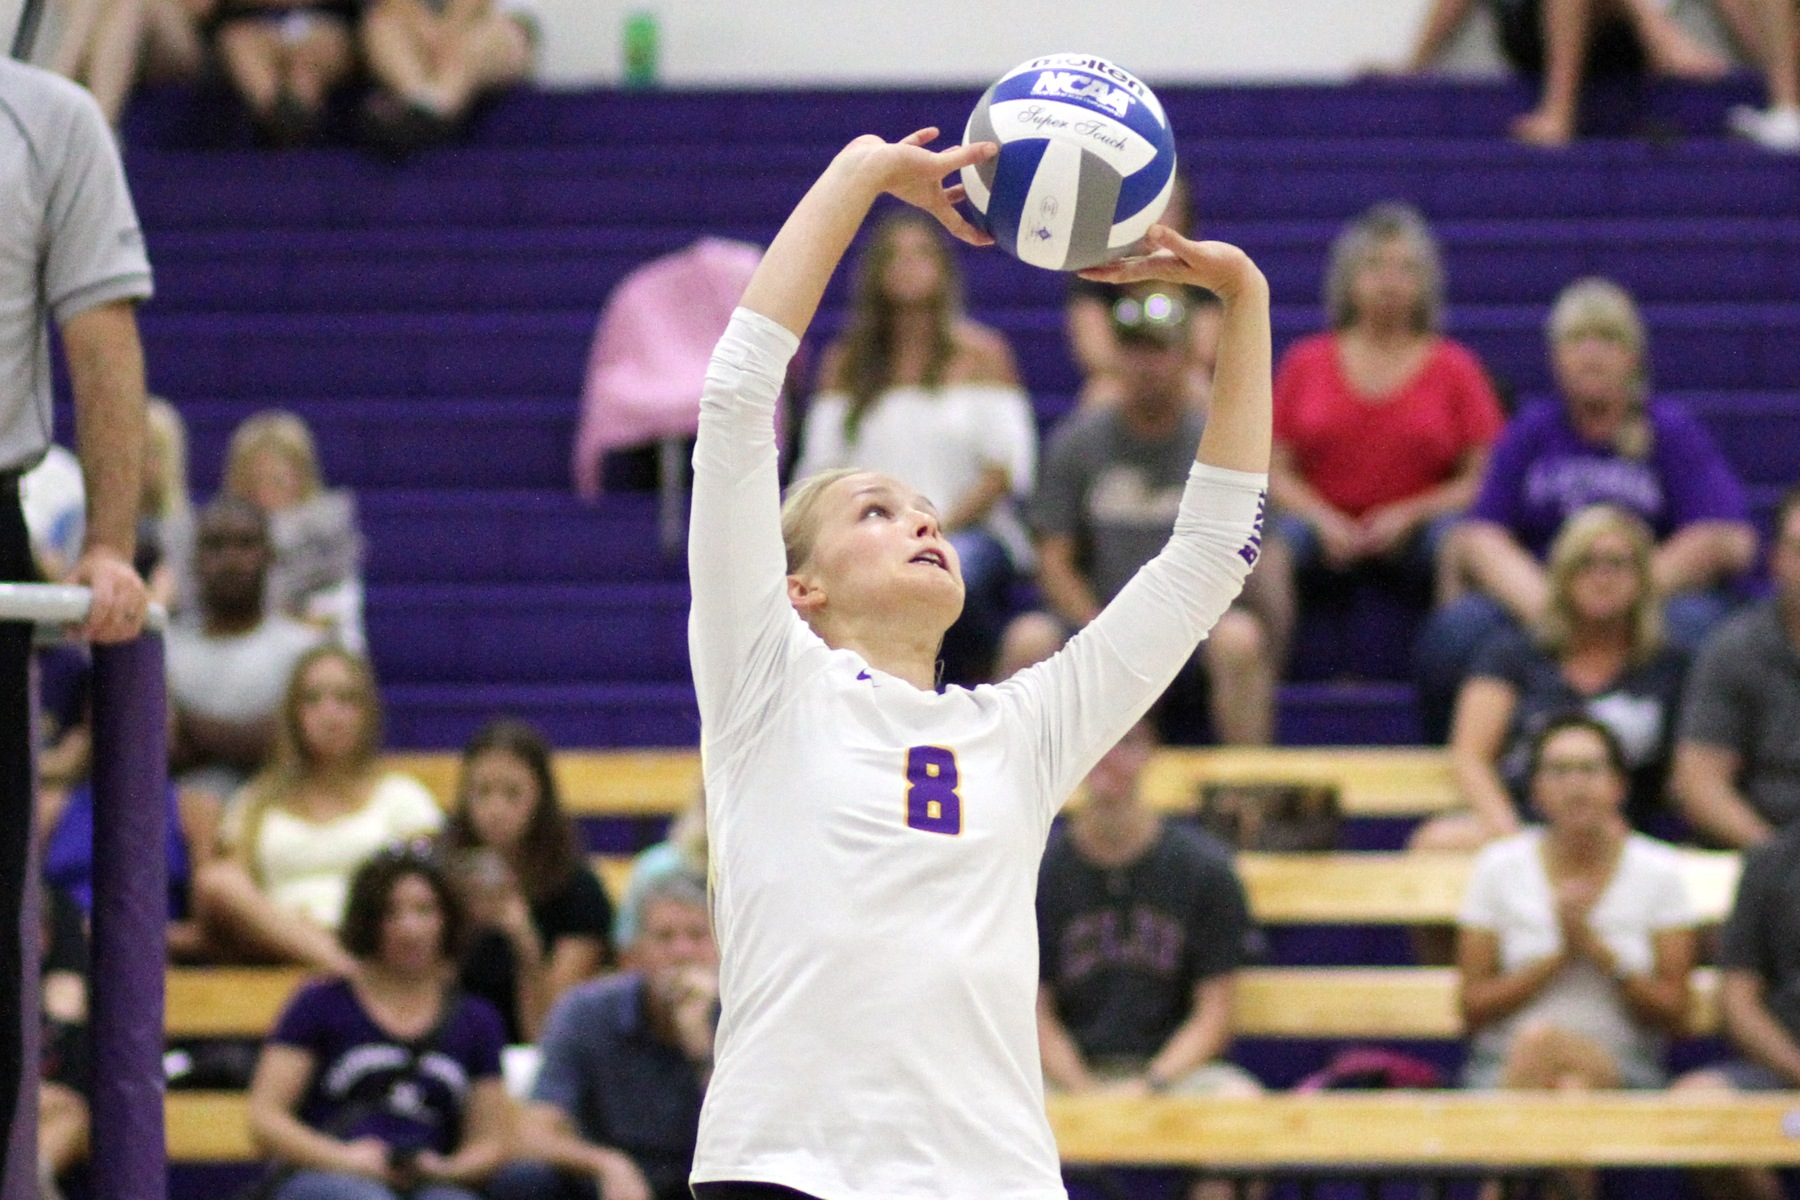 Jamie Smith had a match-high 40 assists against Pomona-Pitzer (Photo: Tracy L. Olson).